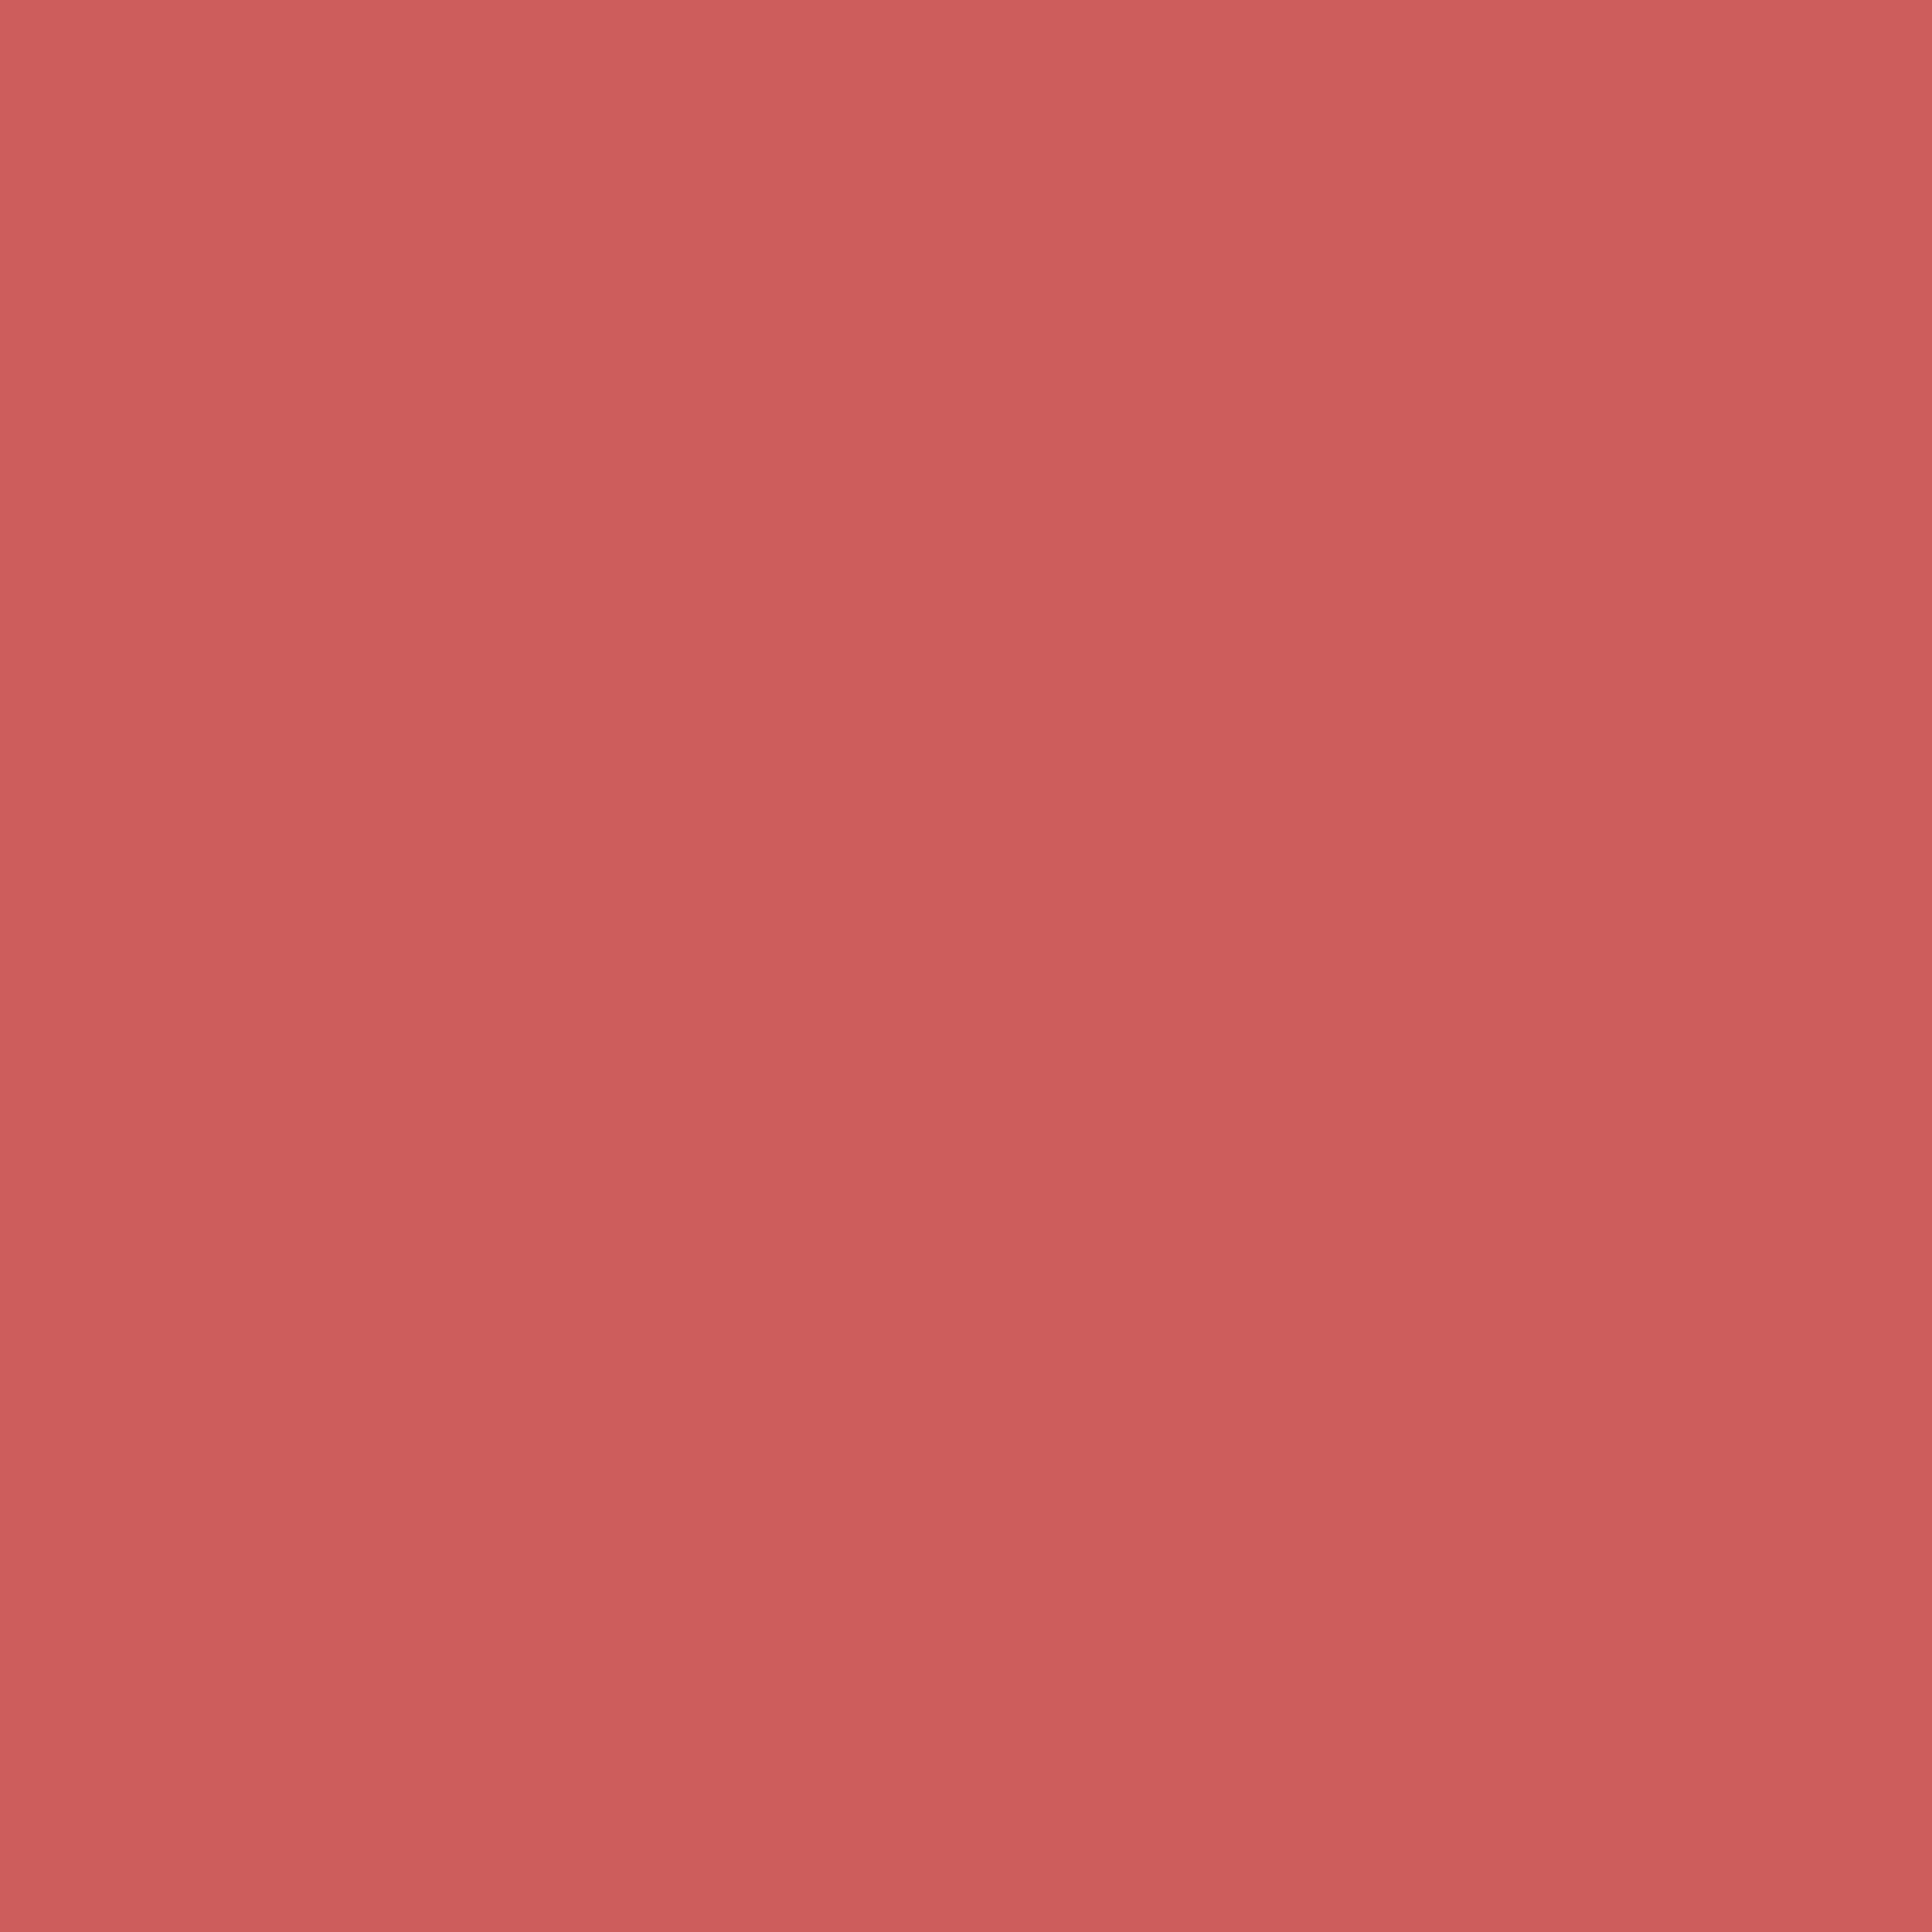 2048x2048 Indian Red Solid Color Background